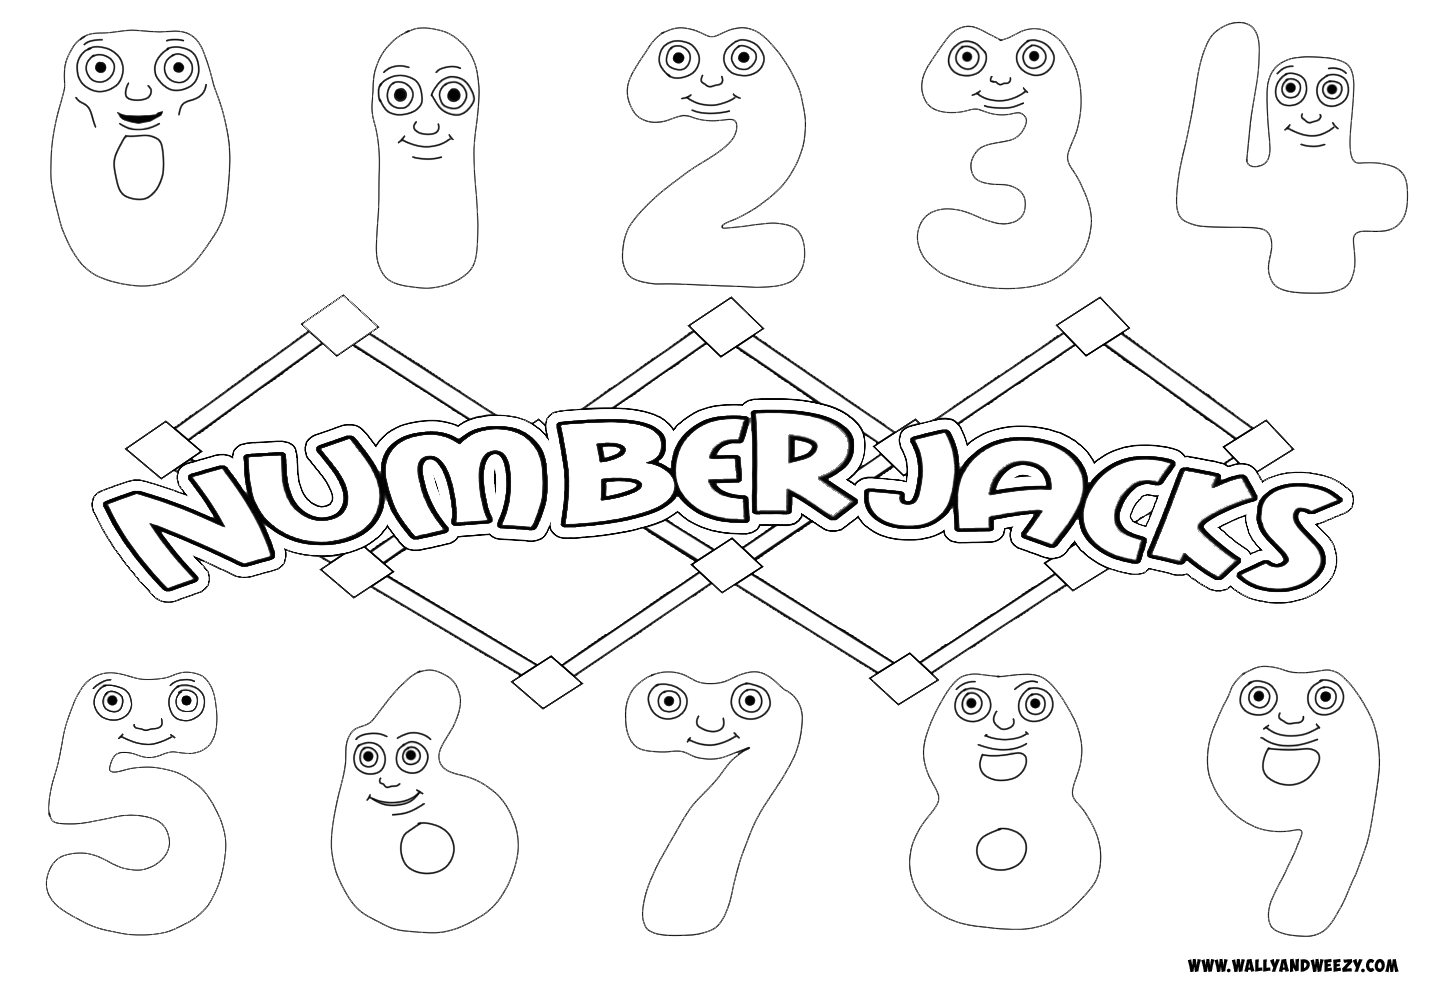 Numberjacks Drawing Coloring Video And Downloadable Coloring Page Coloring Pages Color Drawings